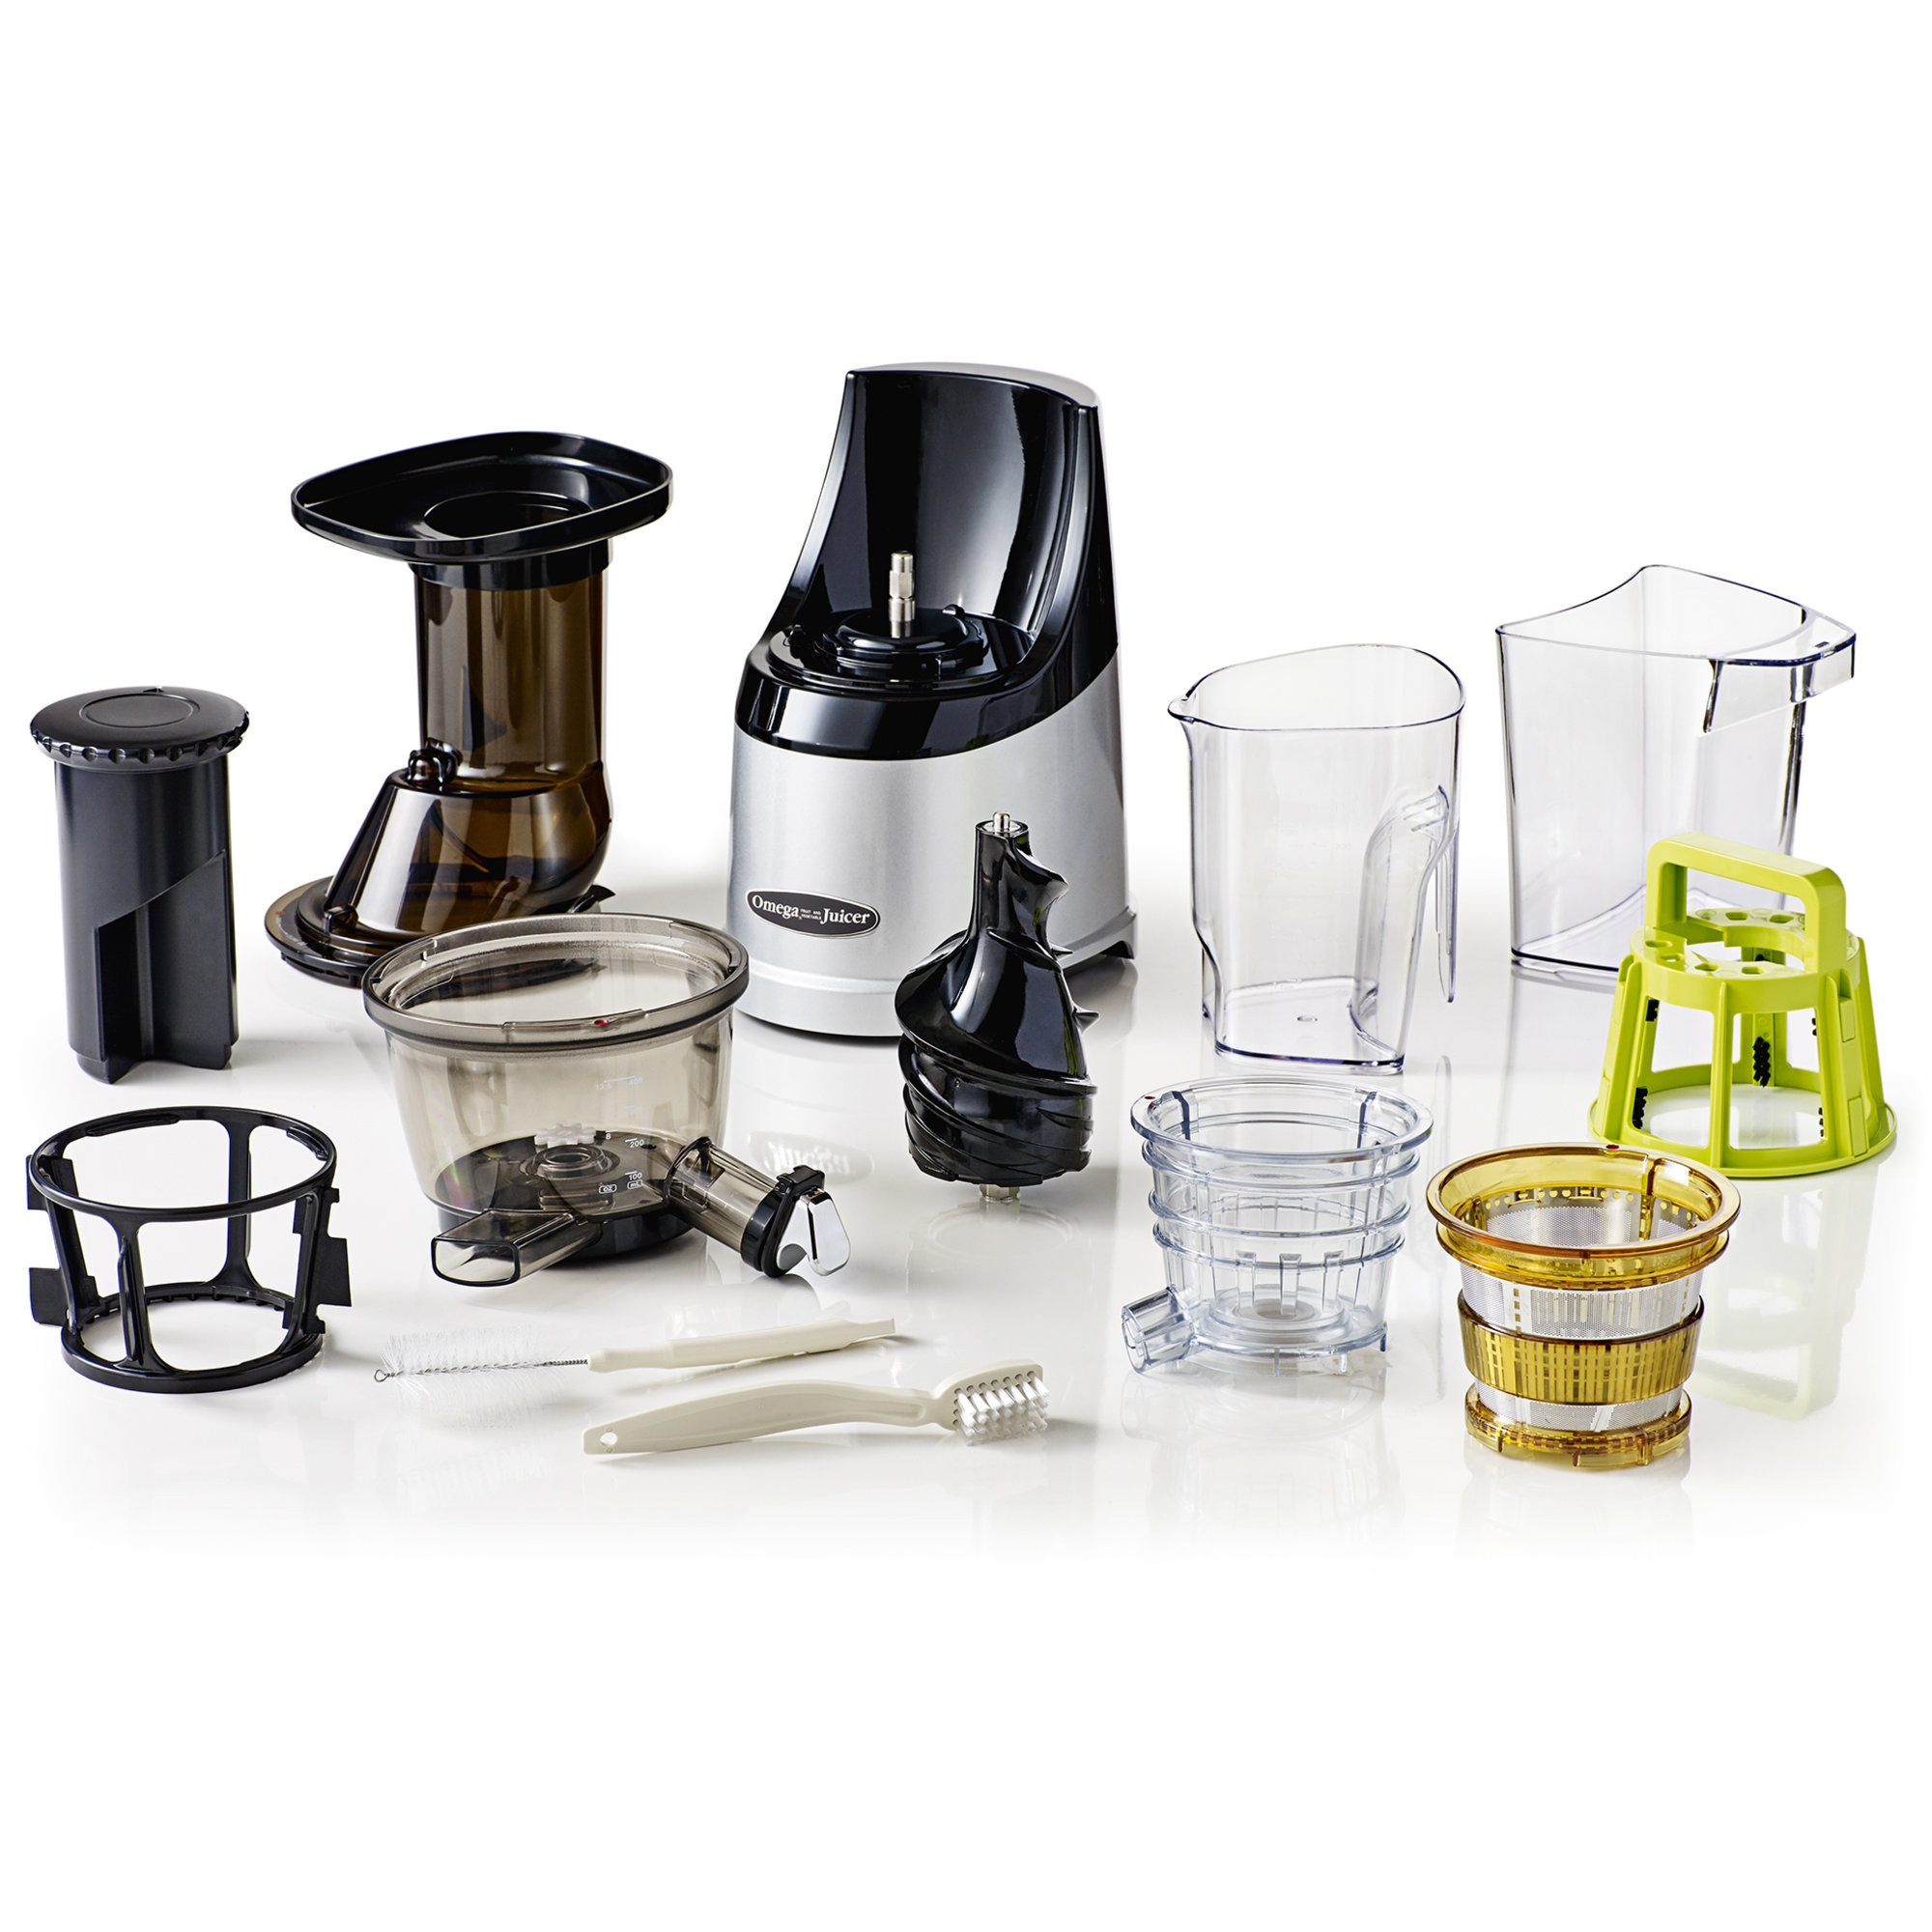 Omega Mega Mouth Slow Juicer : MM702 MegaMouth Slow Juicer fra Omega Gratis Levering